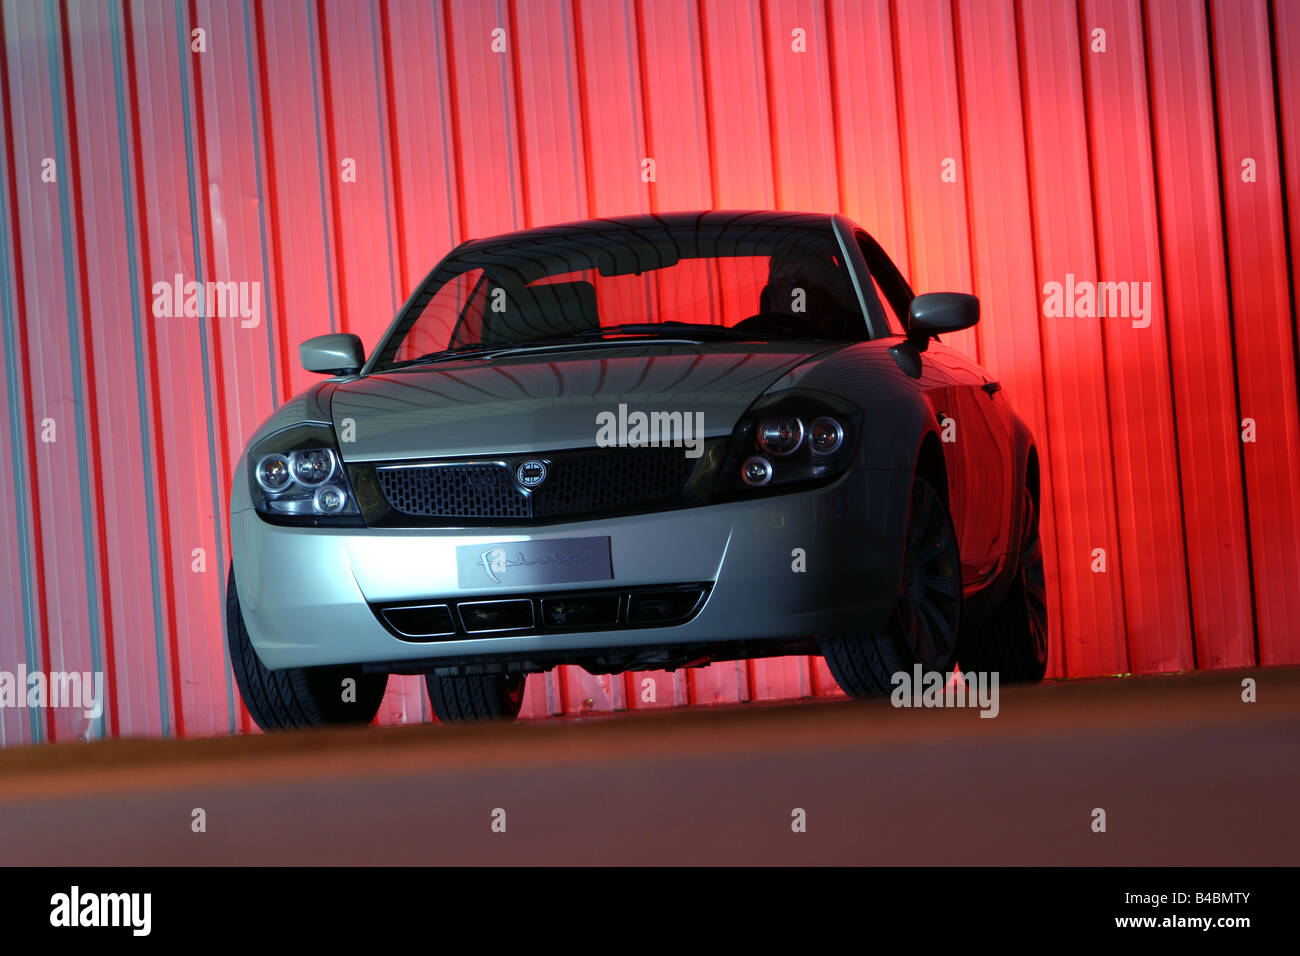 Car, Lancia Fulvia, Study, Draft and design study, model year 2003, silver, standing, upholding, diagonal from the - Stock Image